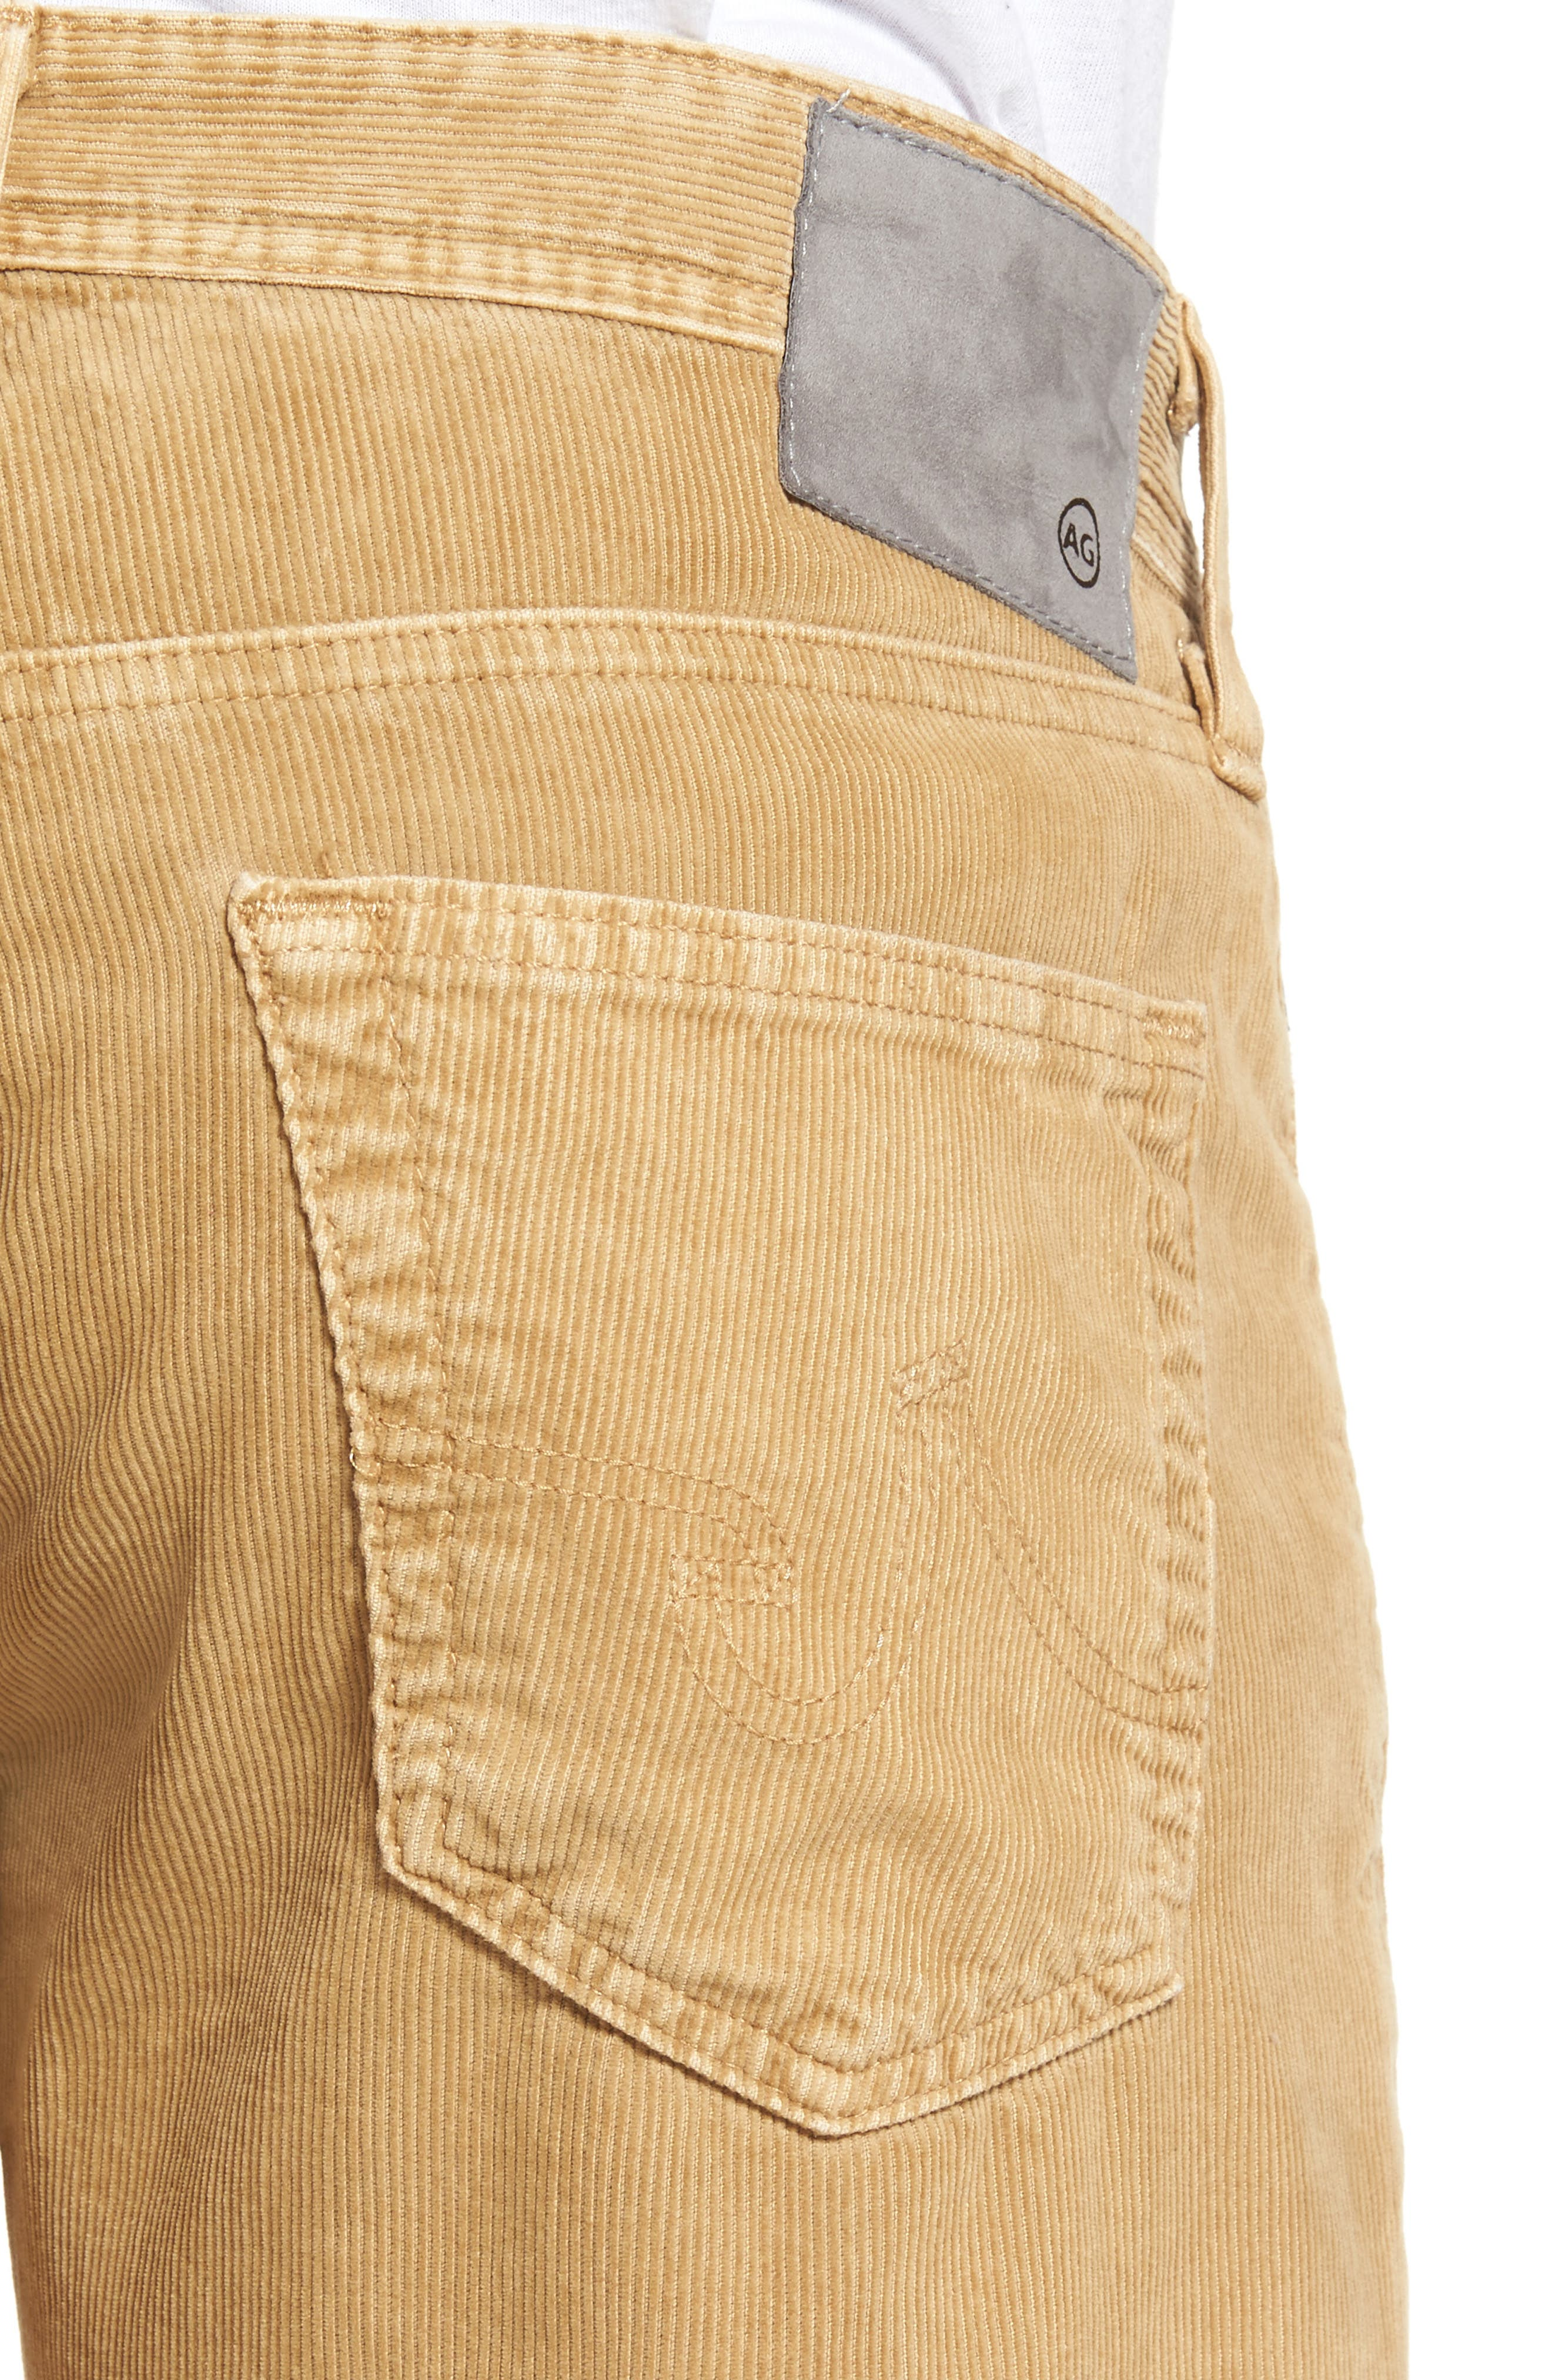 'Graduate' Tailored Straight Leg Corduroy Pants,                             Alternate thumbnail 47, color,